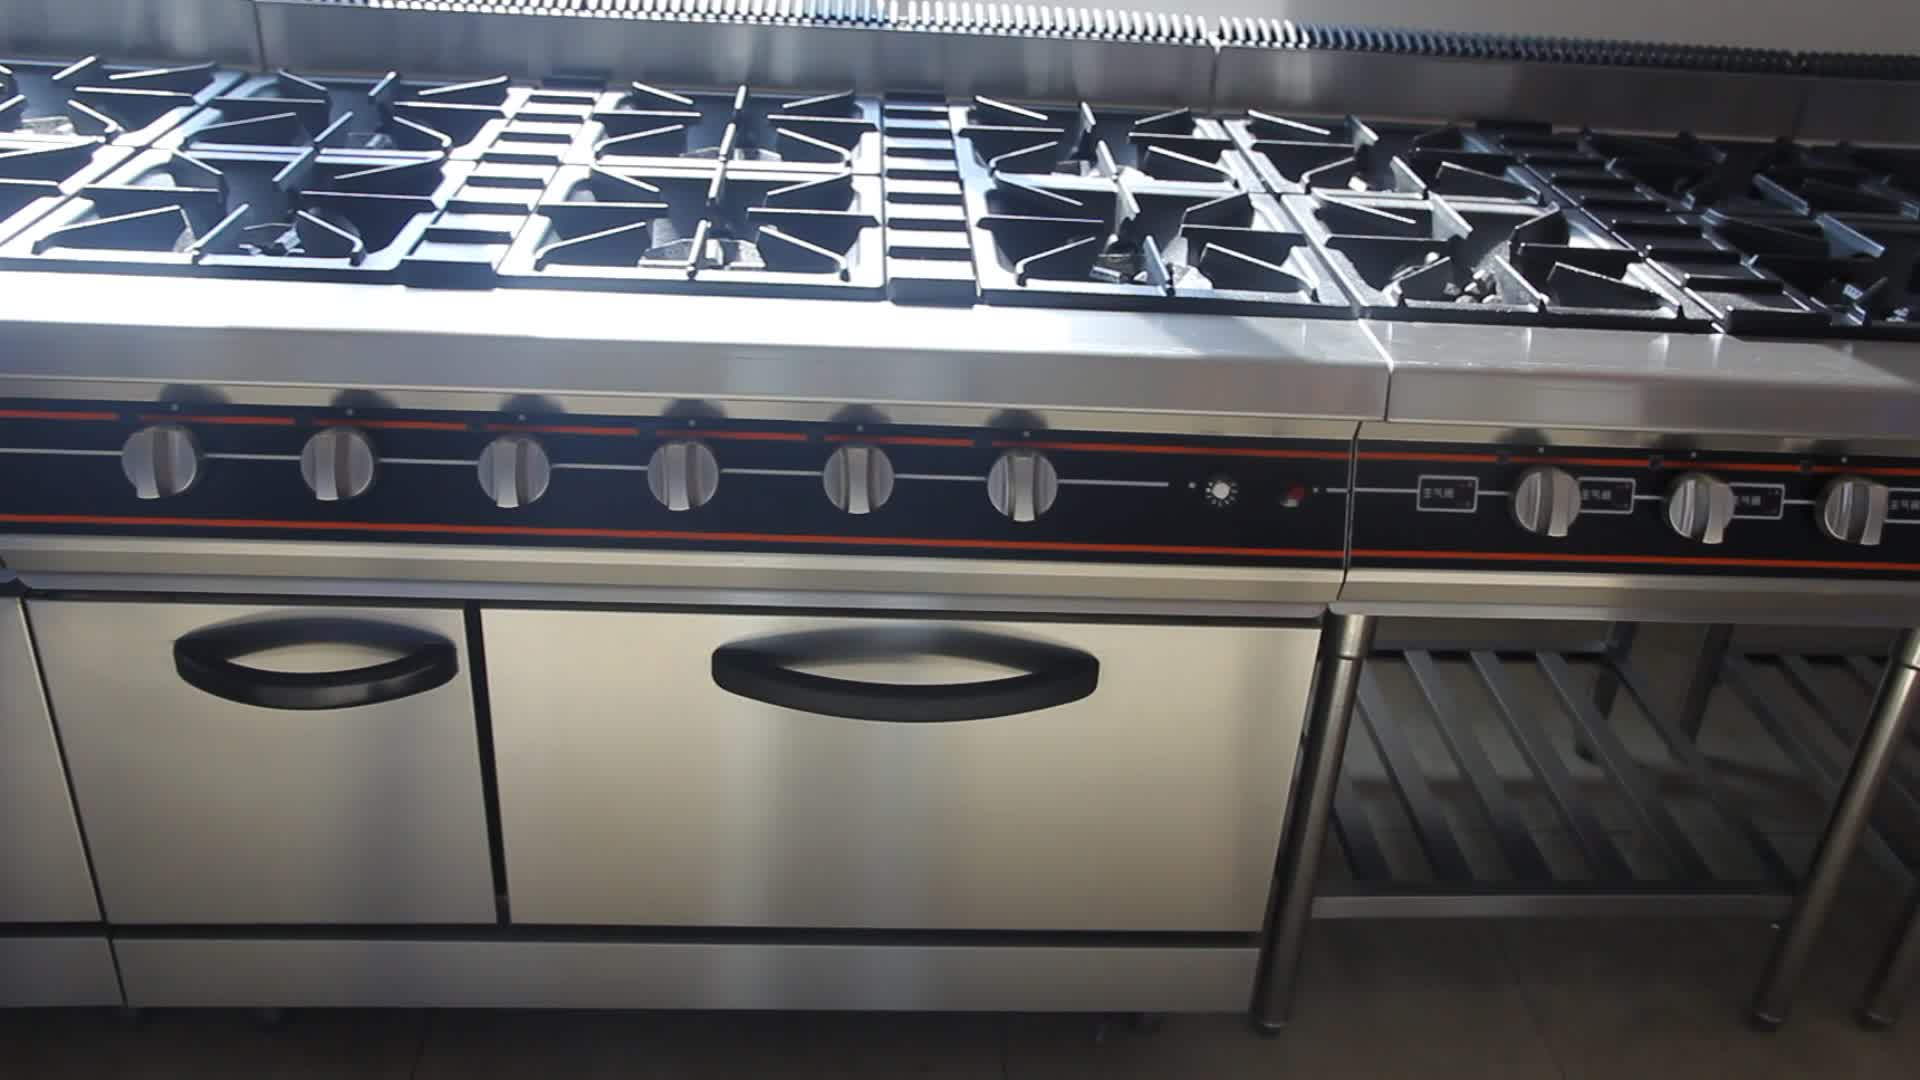 Professional Stainless Steel Hot Kitchen Equipment